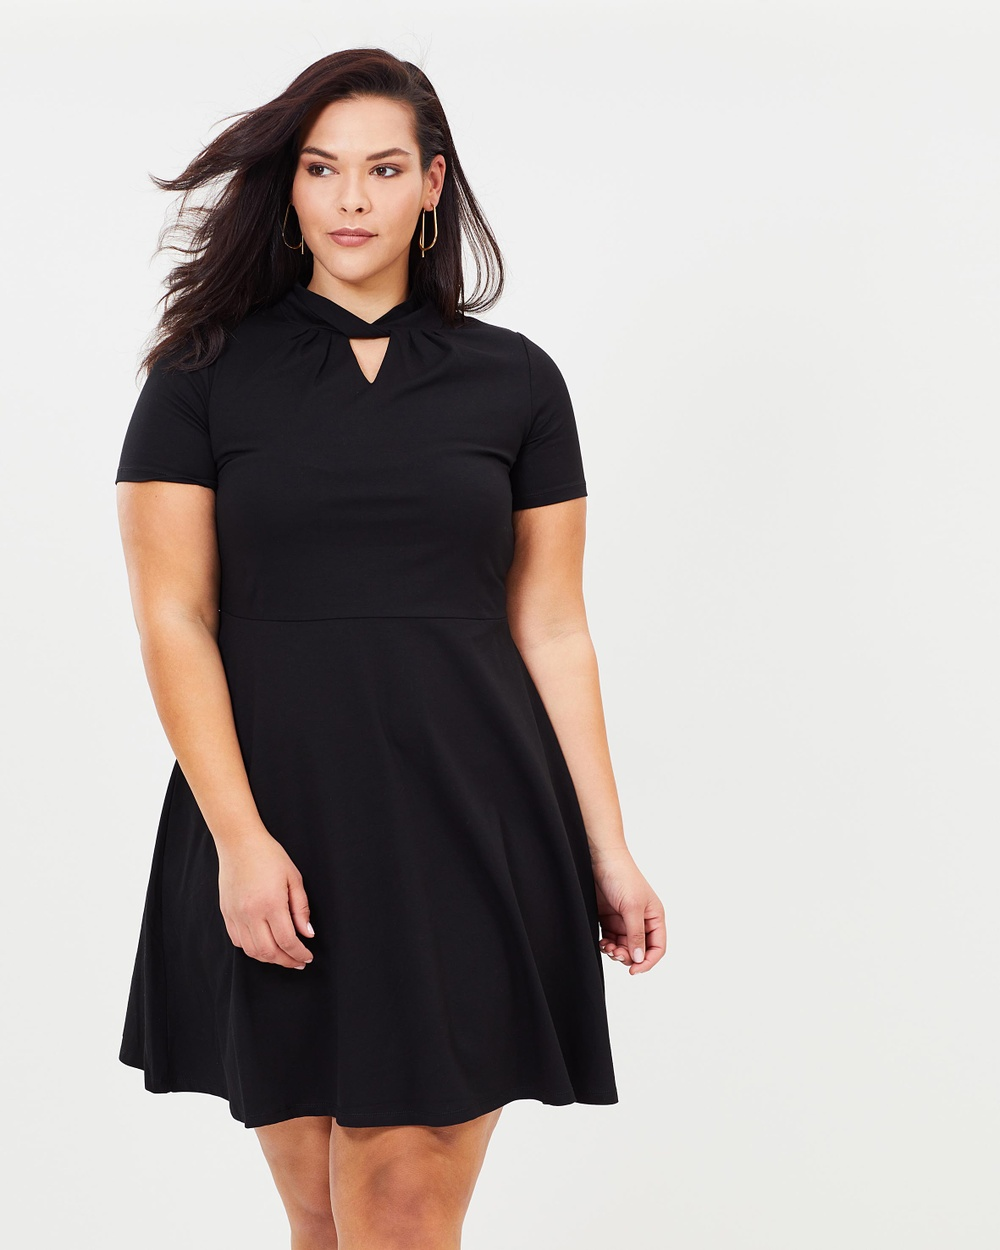 DP Curve Hannah Twist Detail Fit and Flare Dress Dresses Black Hannah Twist Detail Fit-and-Flare Dress